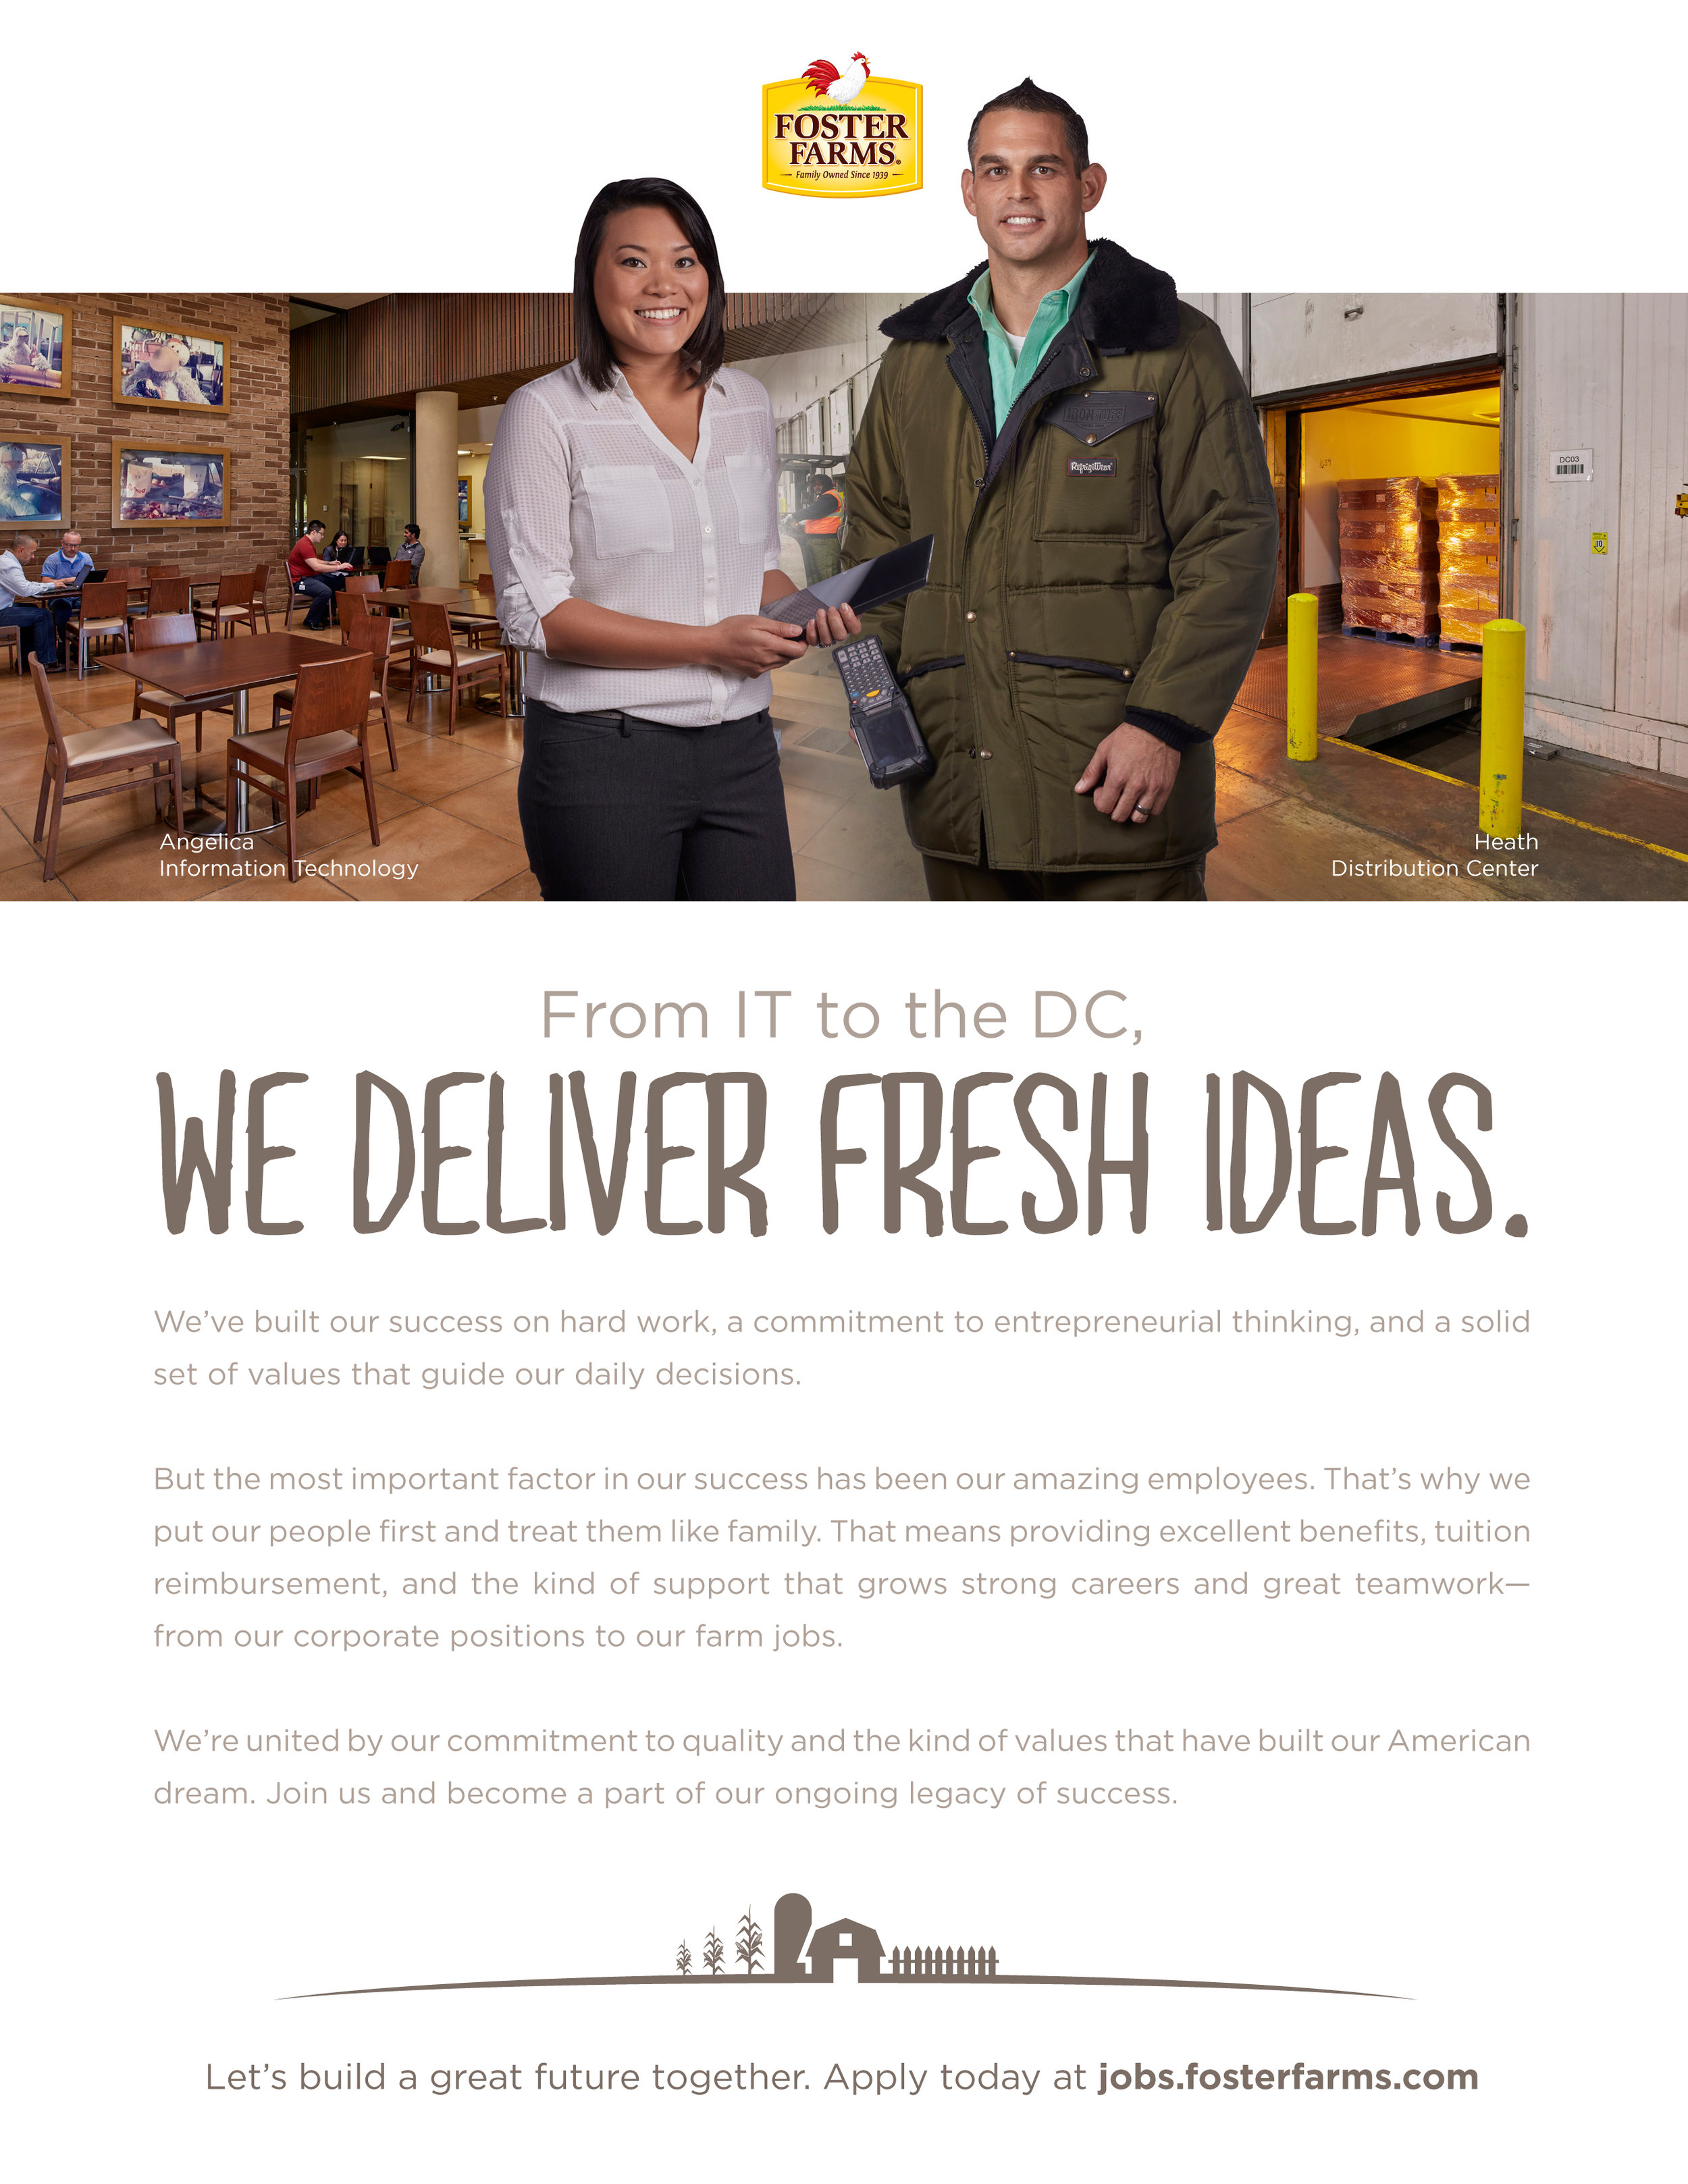 Foster Farms Brand Messaging and Design